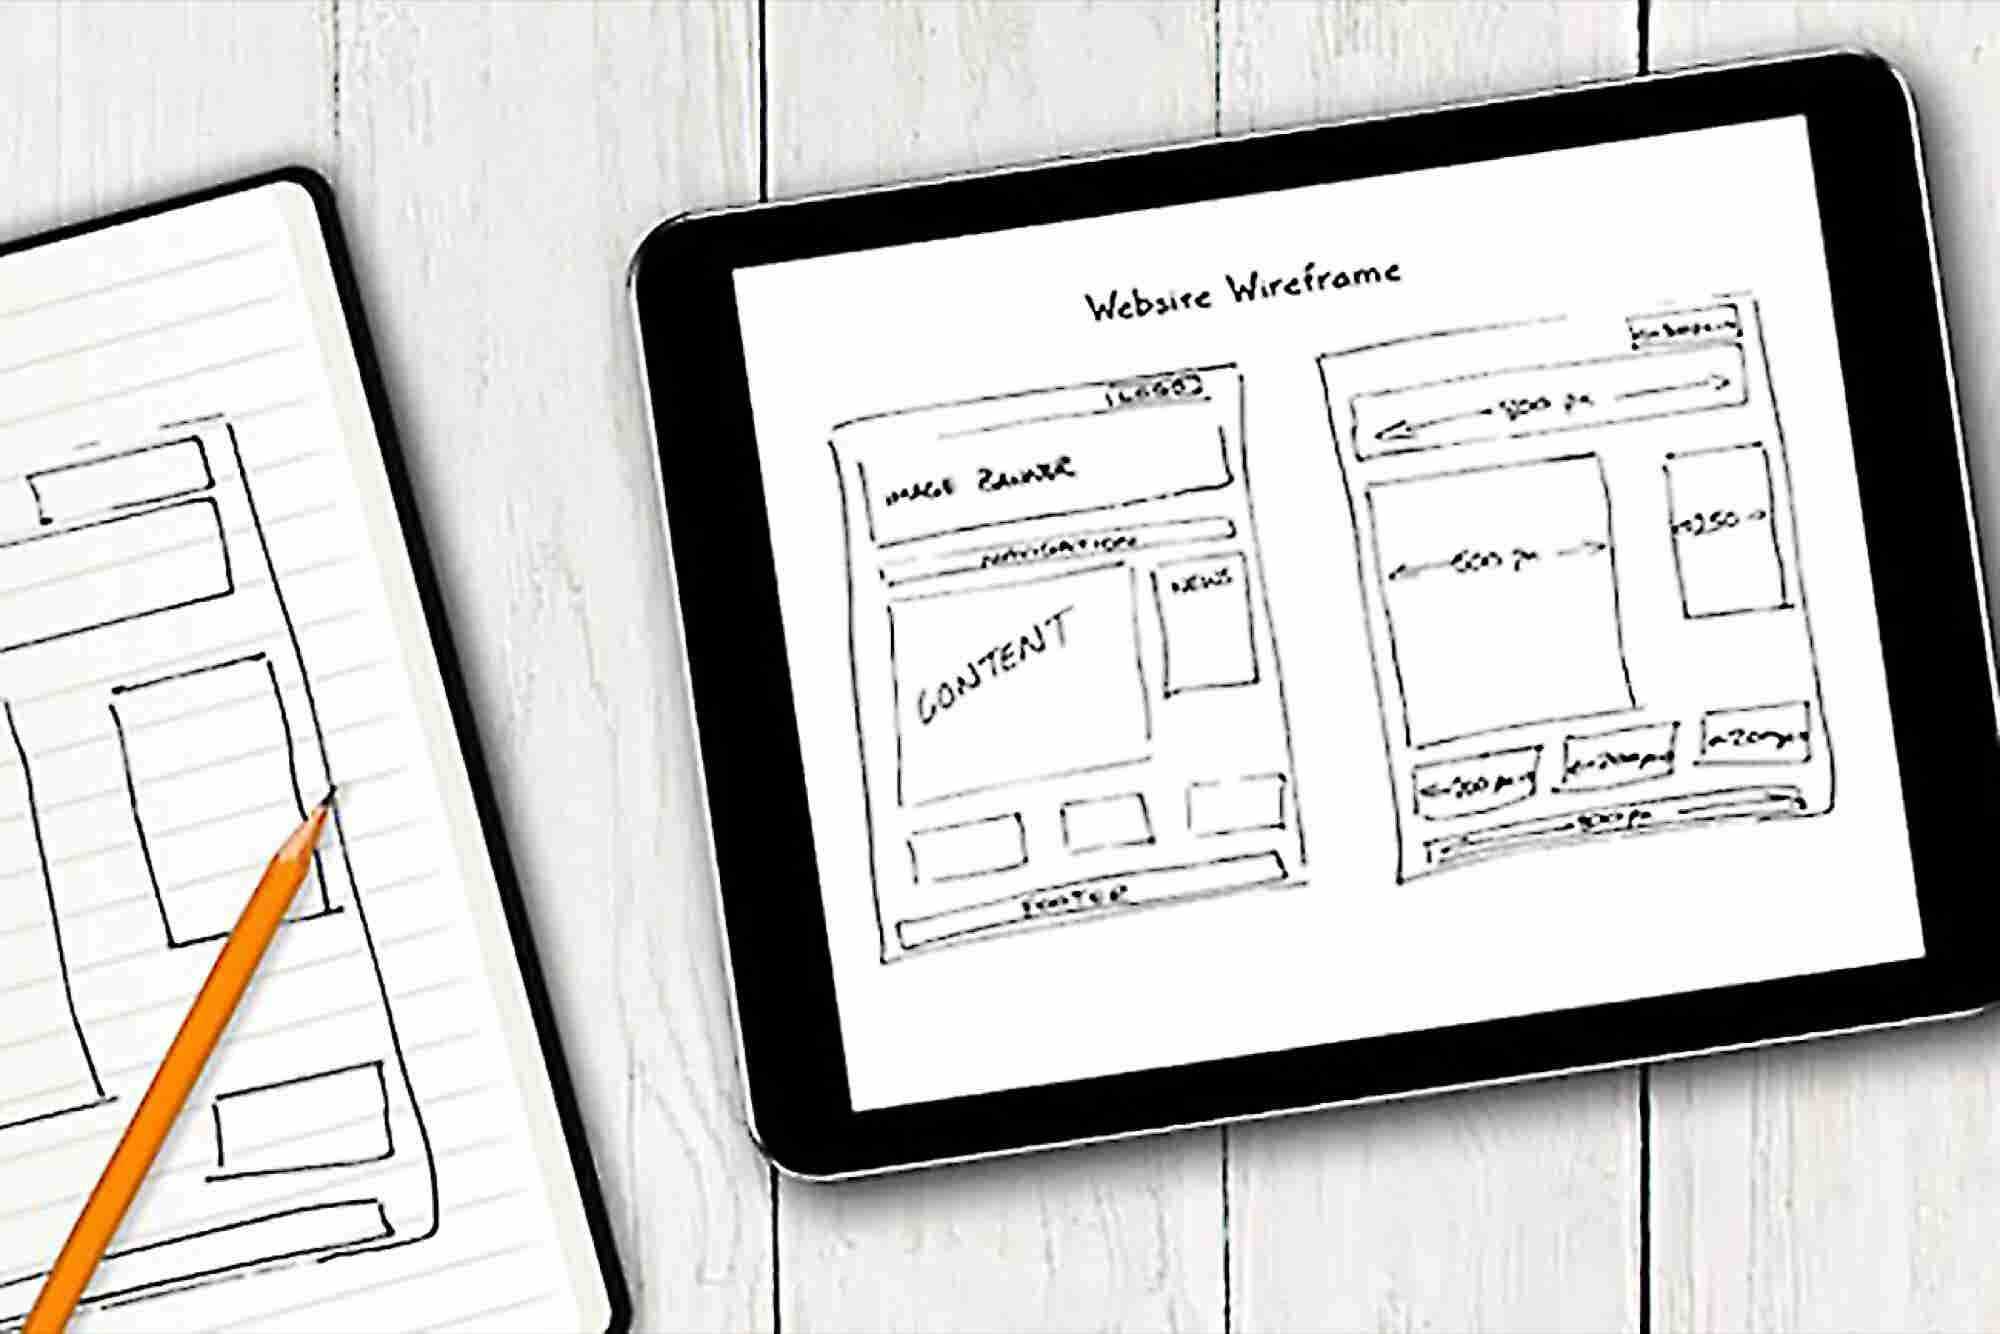 Launching a Website: 3 Tips for Getting Started